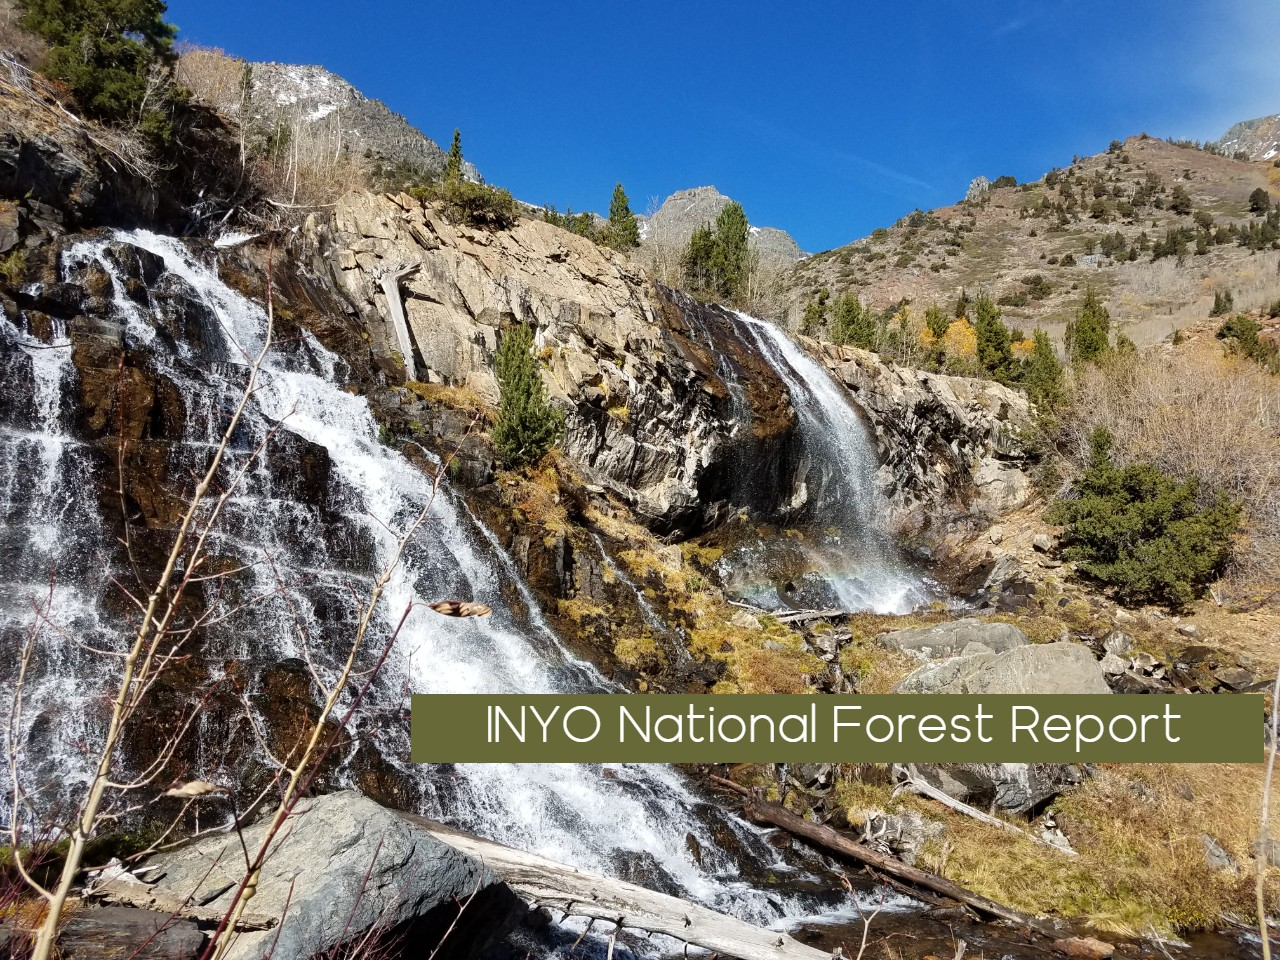 Inyo National Forest Lundy Canyon